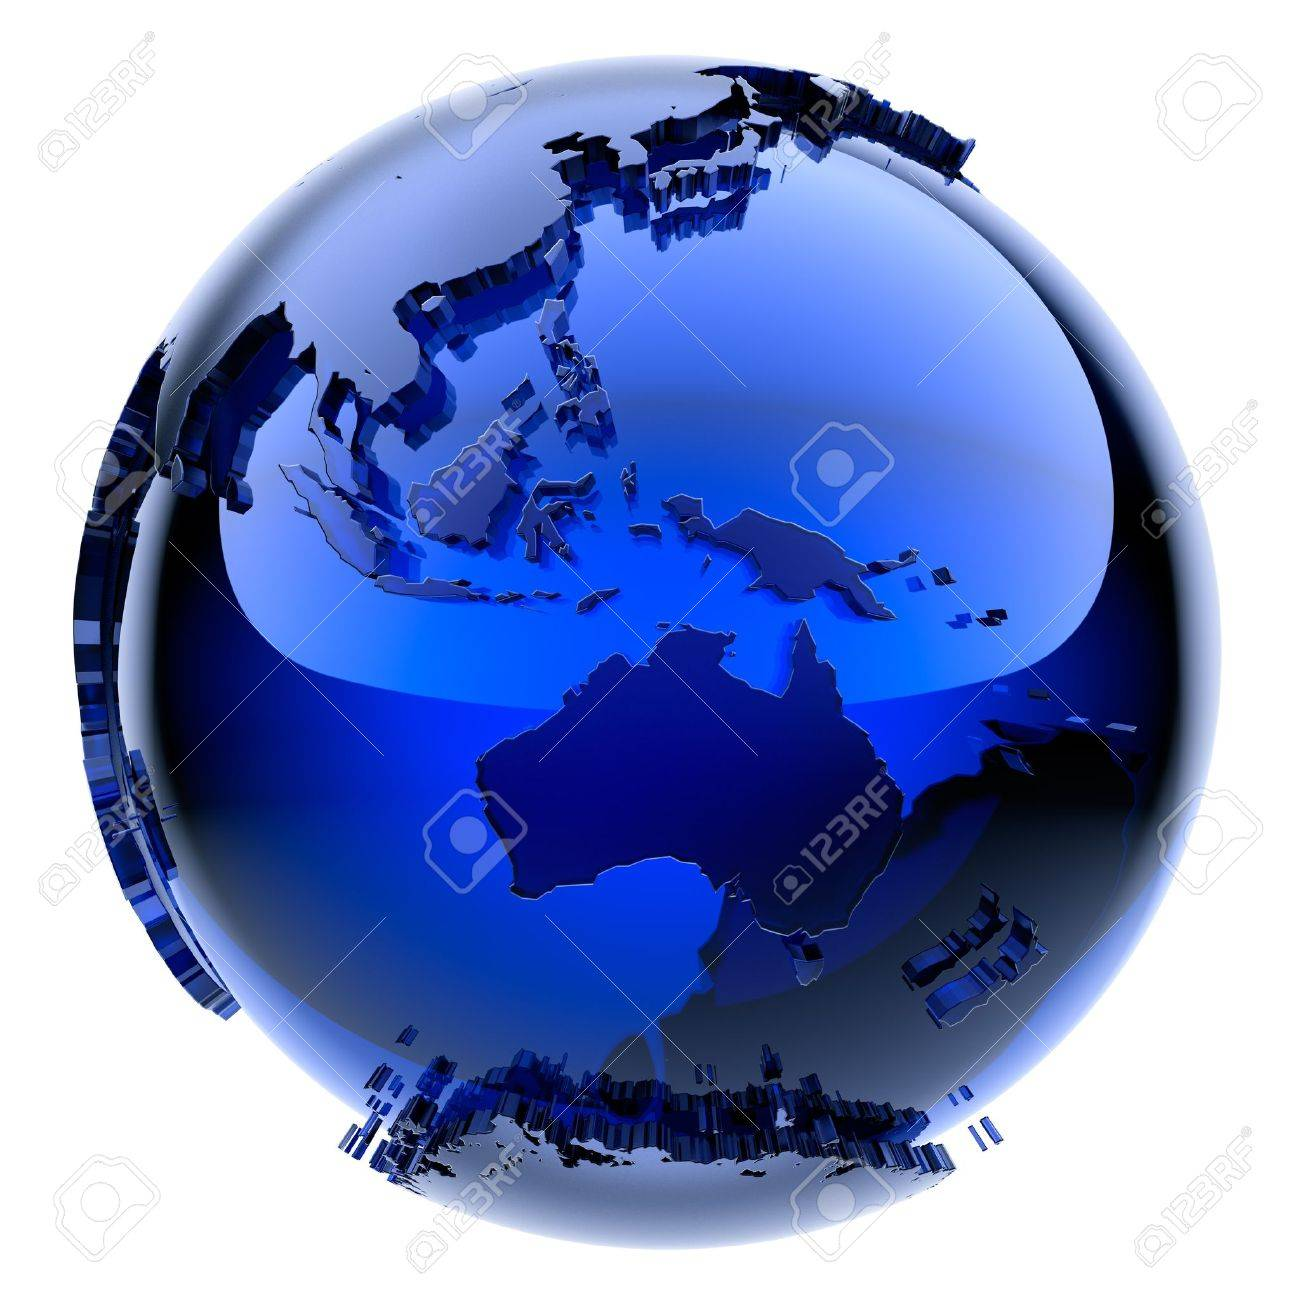 Blue glass globe with frosted continents a little stand out from the water surface Stock Photo - 11918717